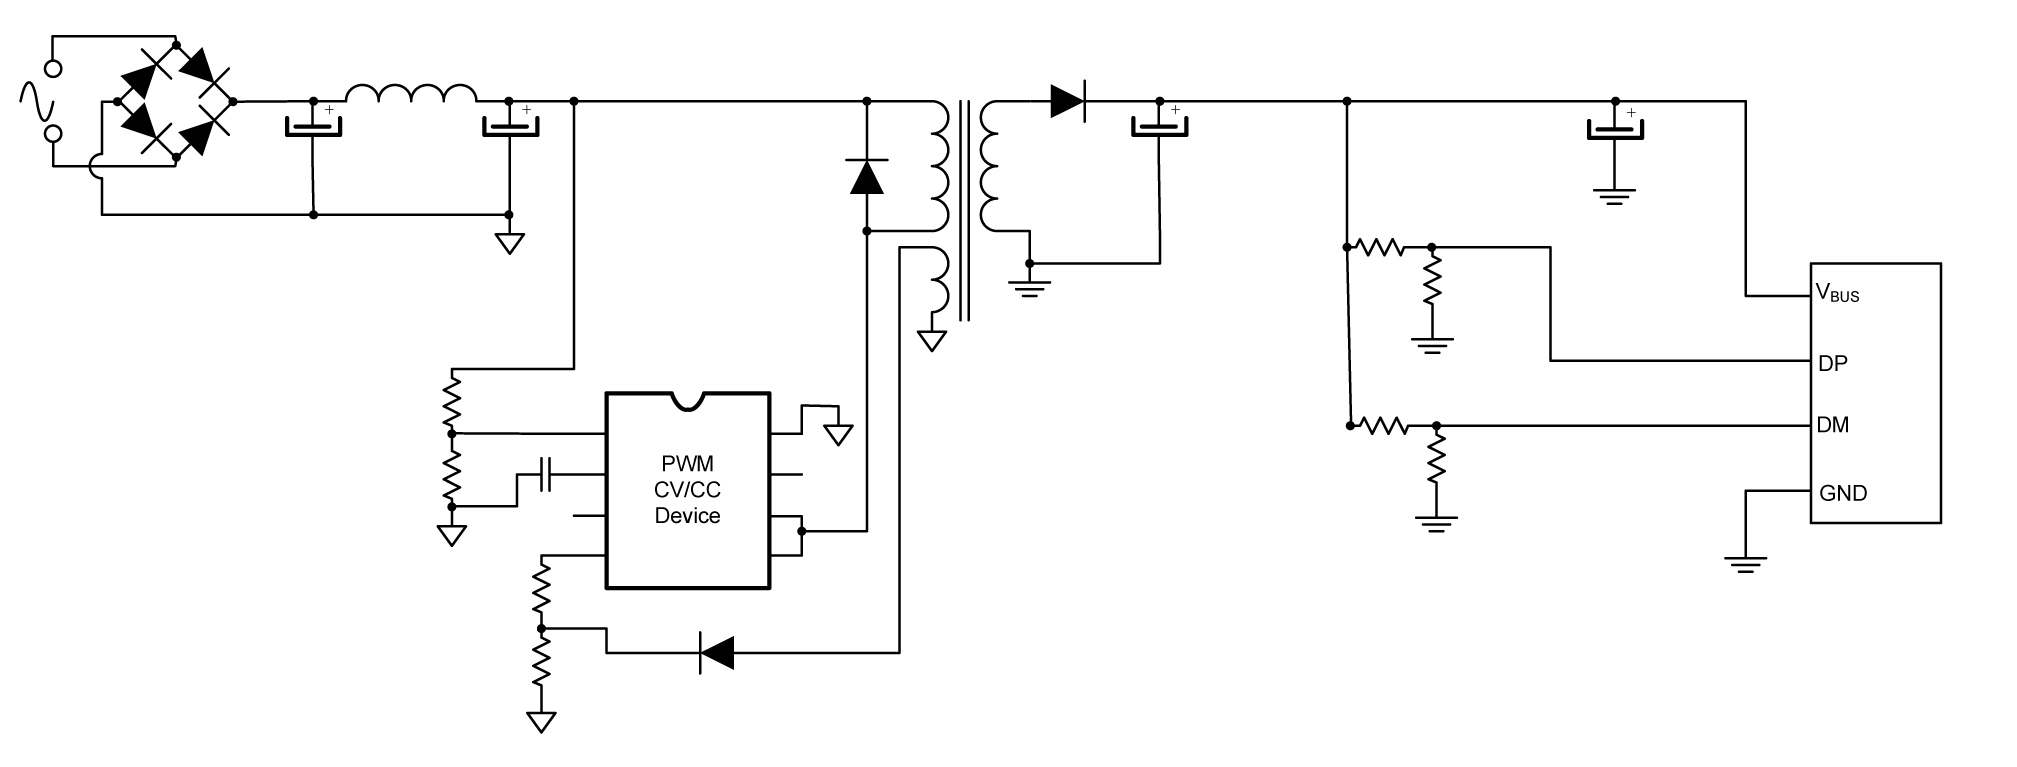 12V Usb Charger Wiring Diagram   Wiring Library - Usb Charger Wiring Diagram